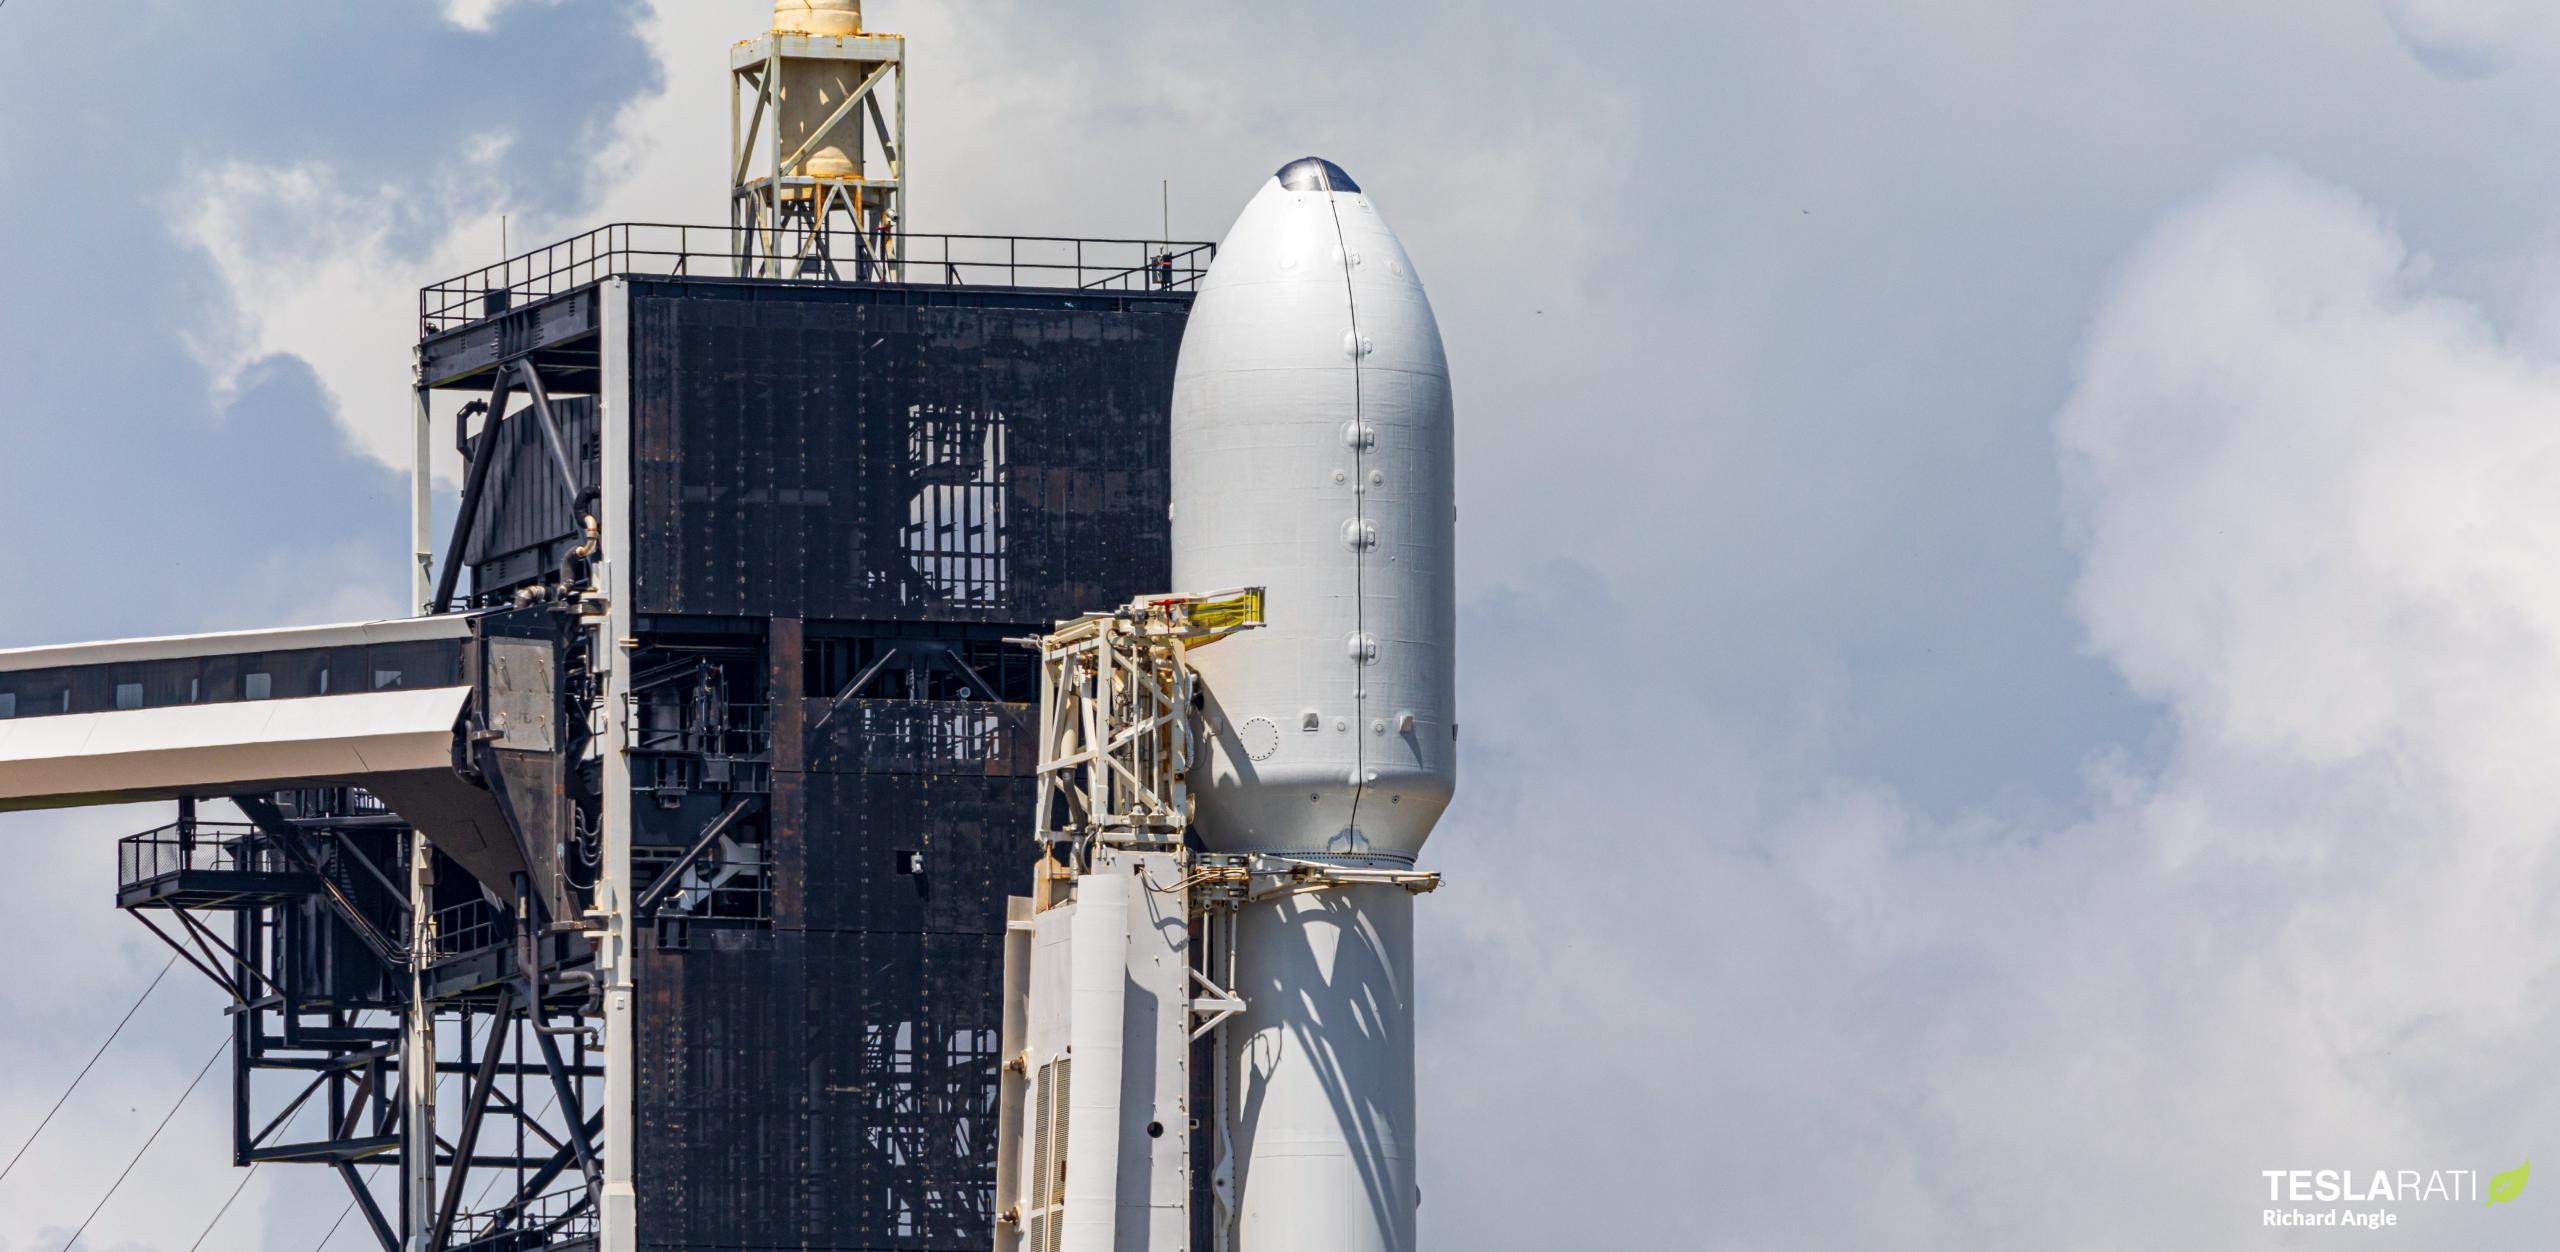 Starlink-11 Falcon 9 B1060 LC-39A 083120 (Richard Angle) 1 crop (c)